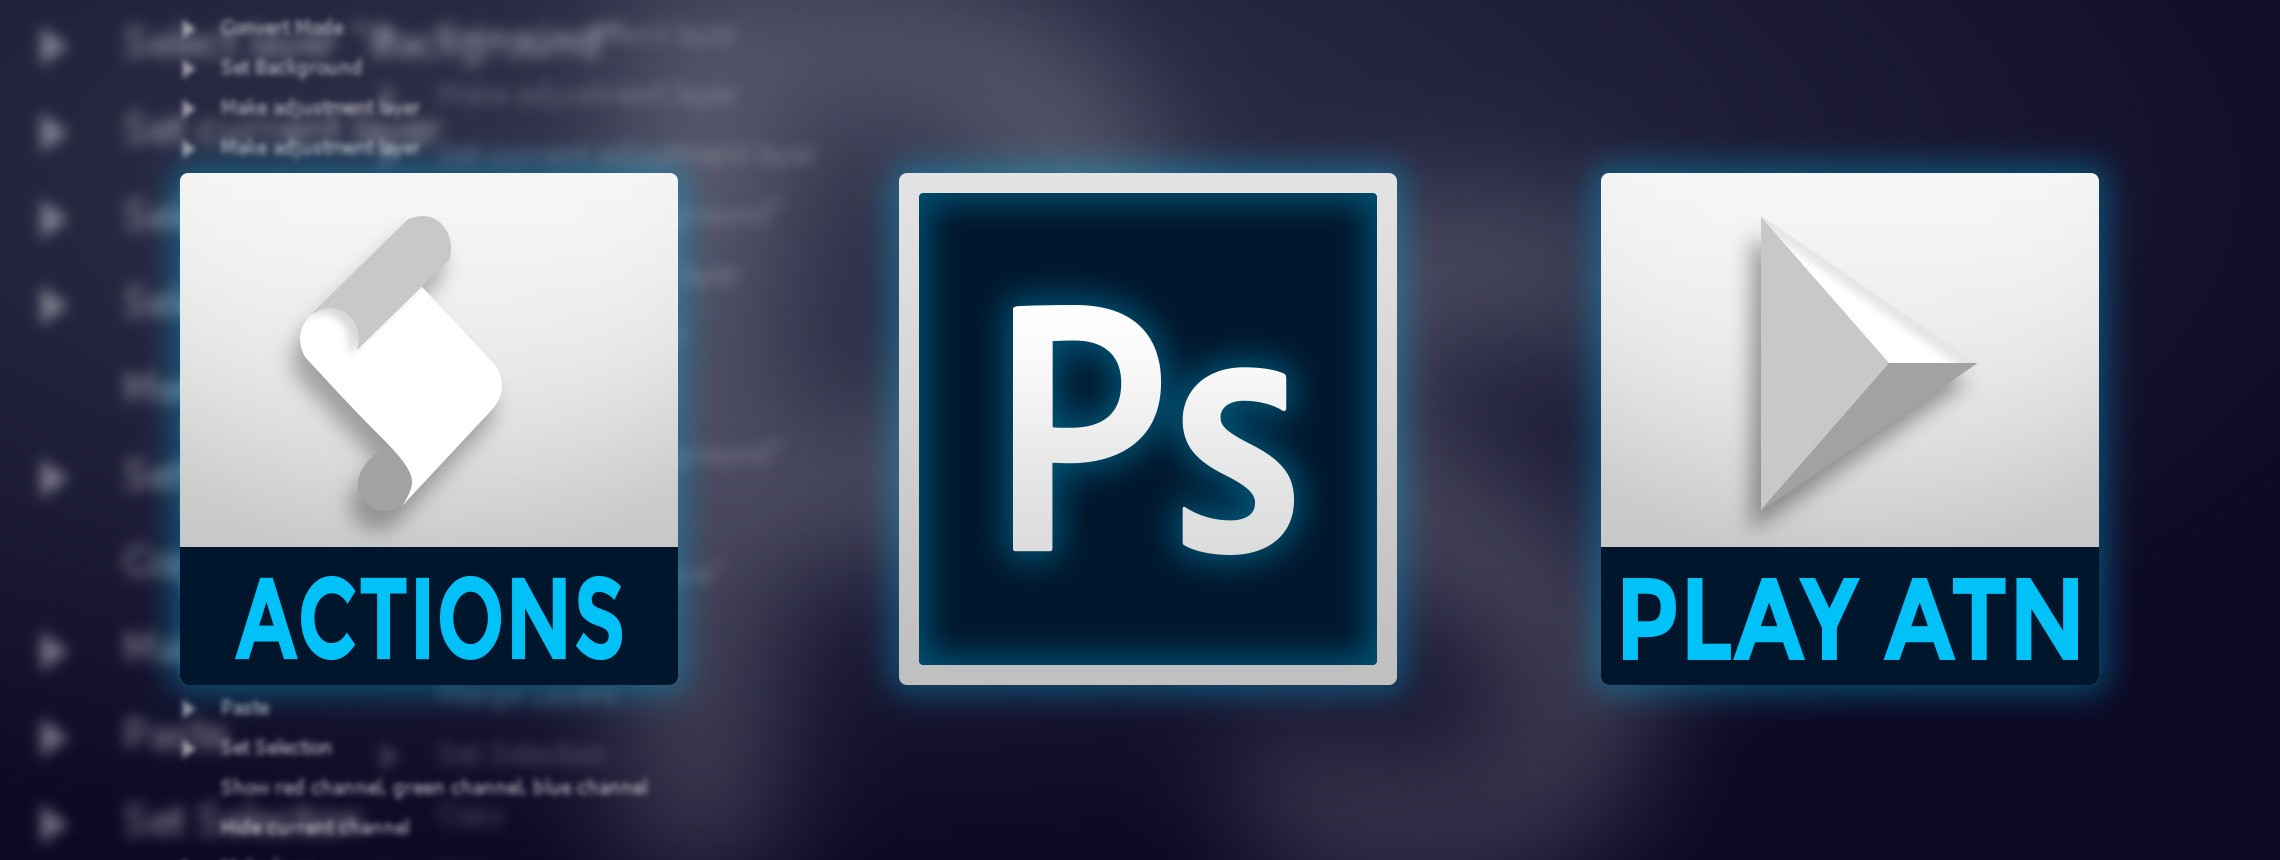 How to install and use actions in photoshop